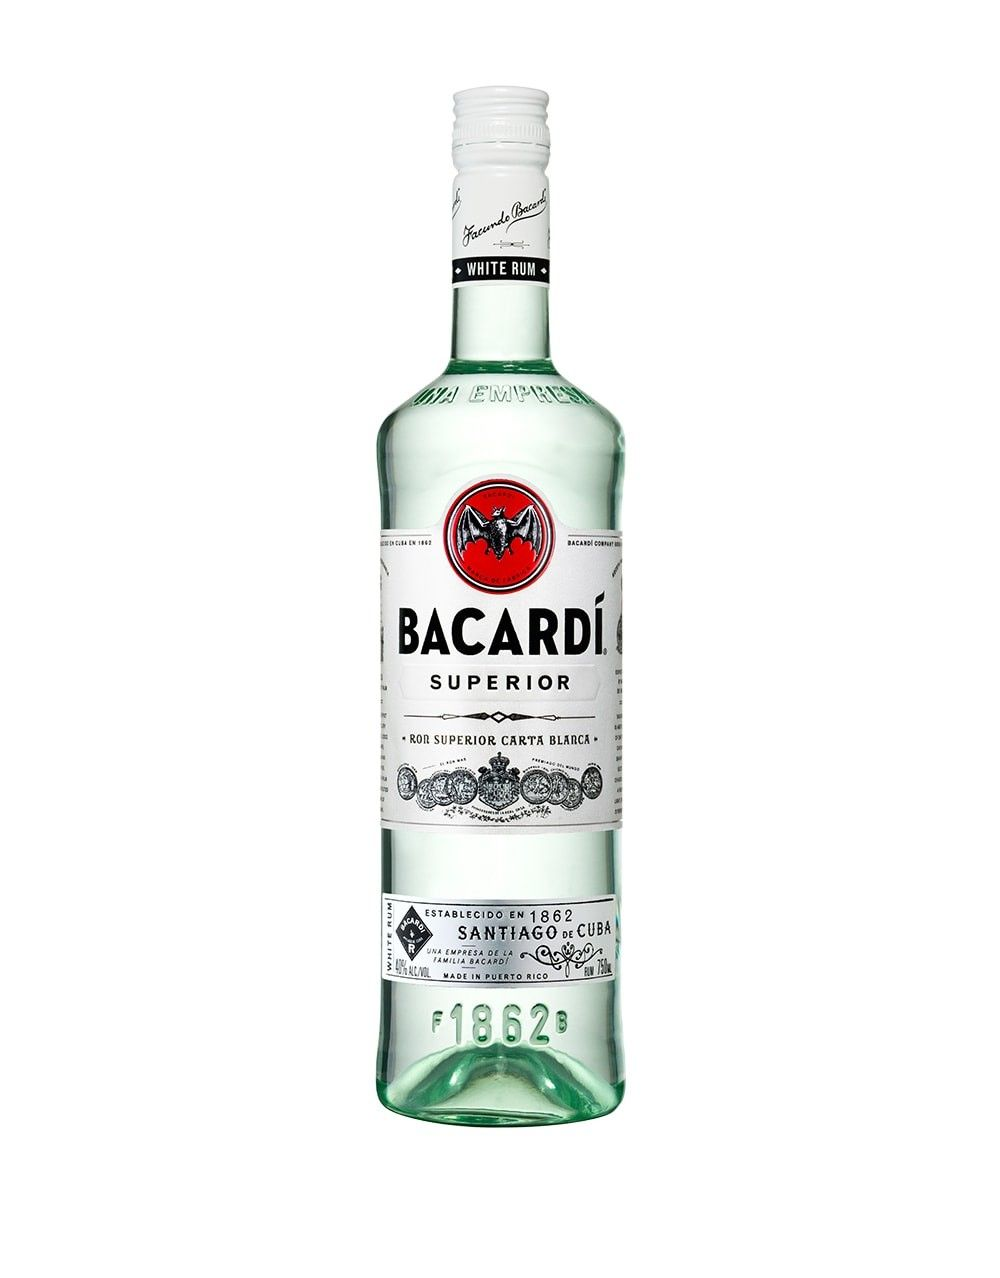 Bacardí Superior Rum | Buy Online or Send as a Gift ...